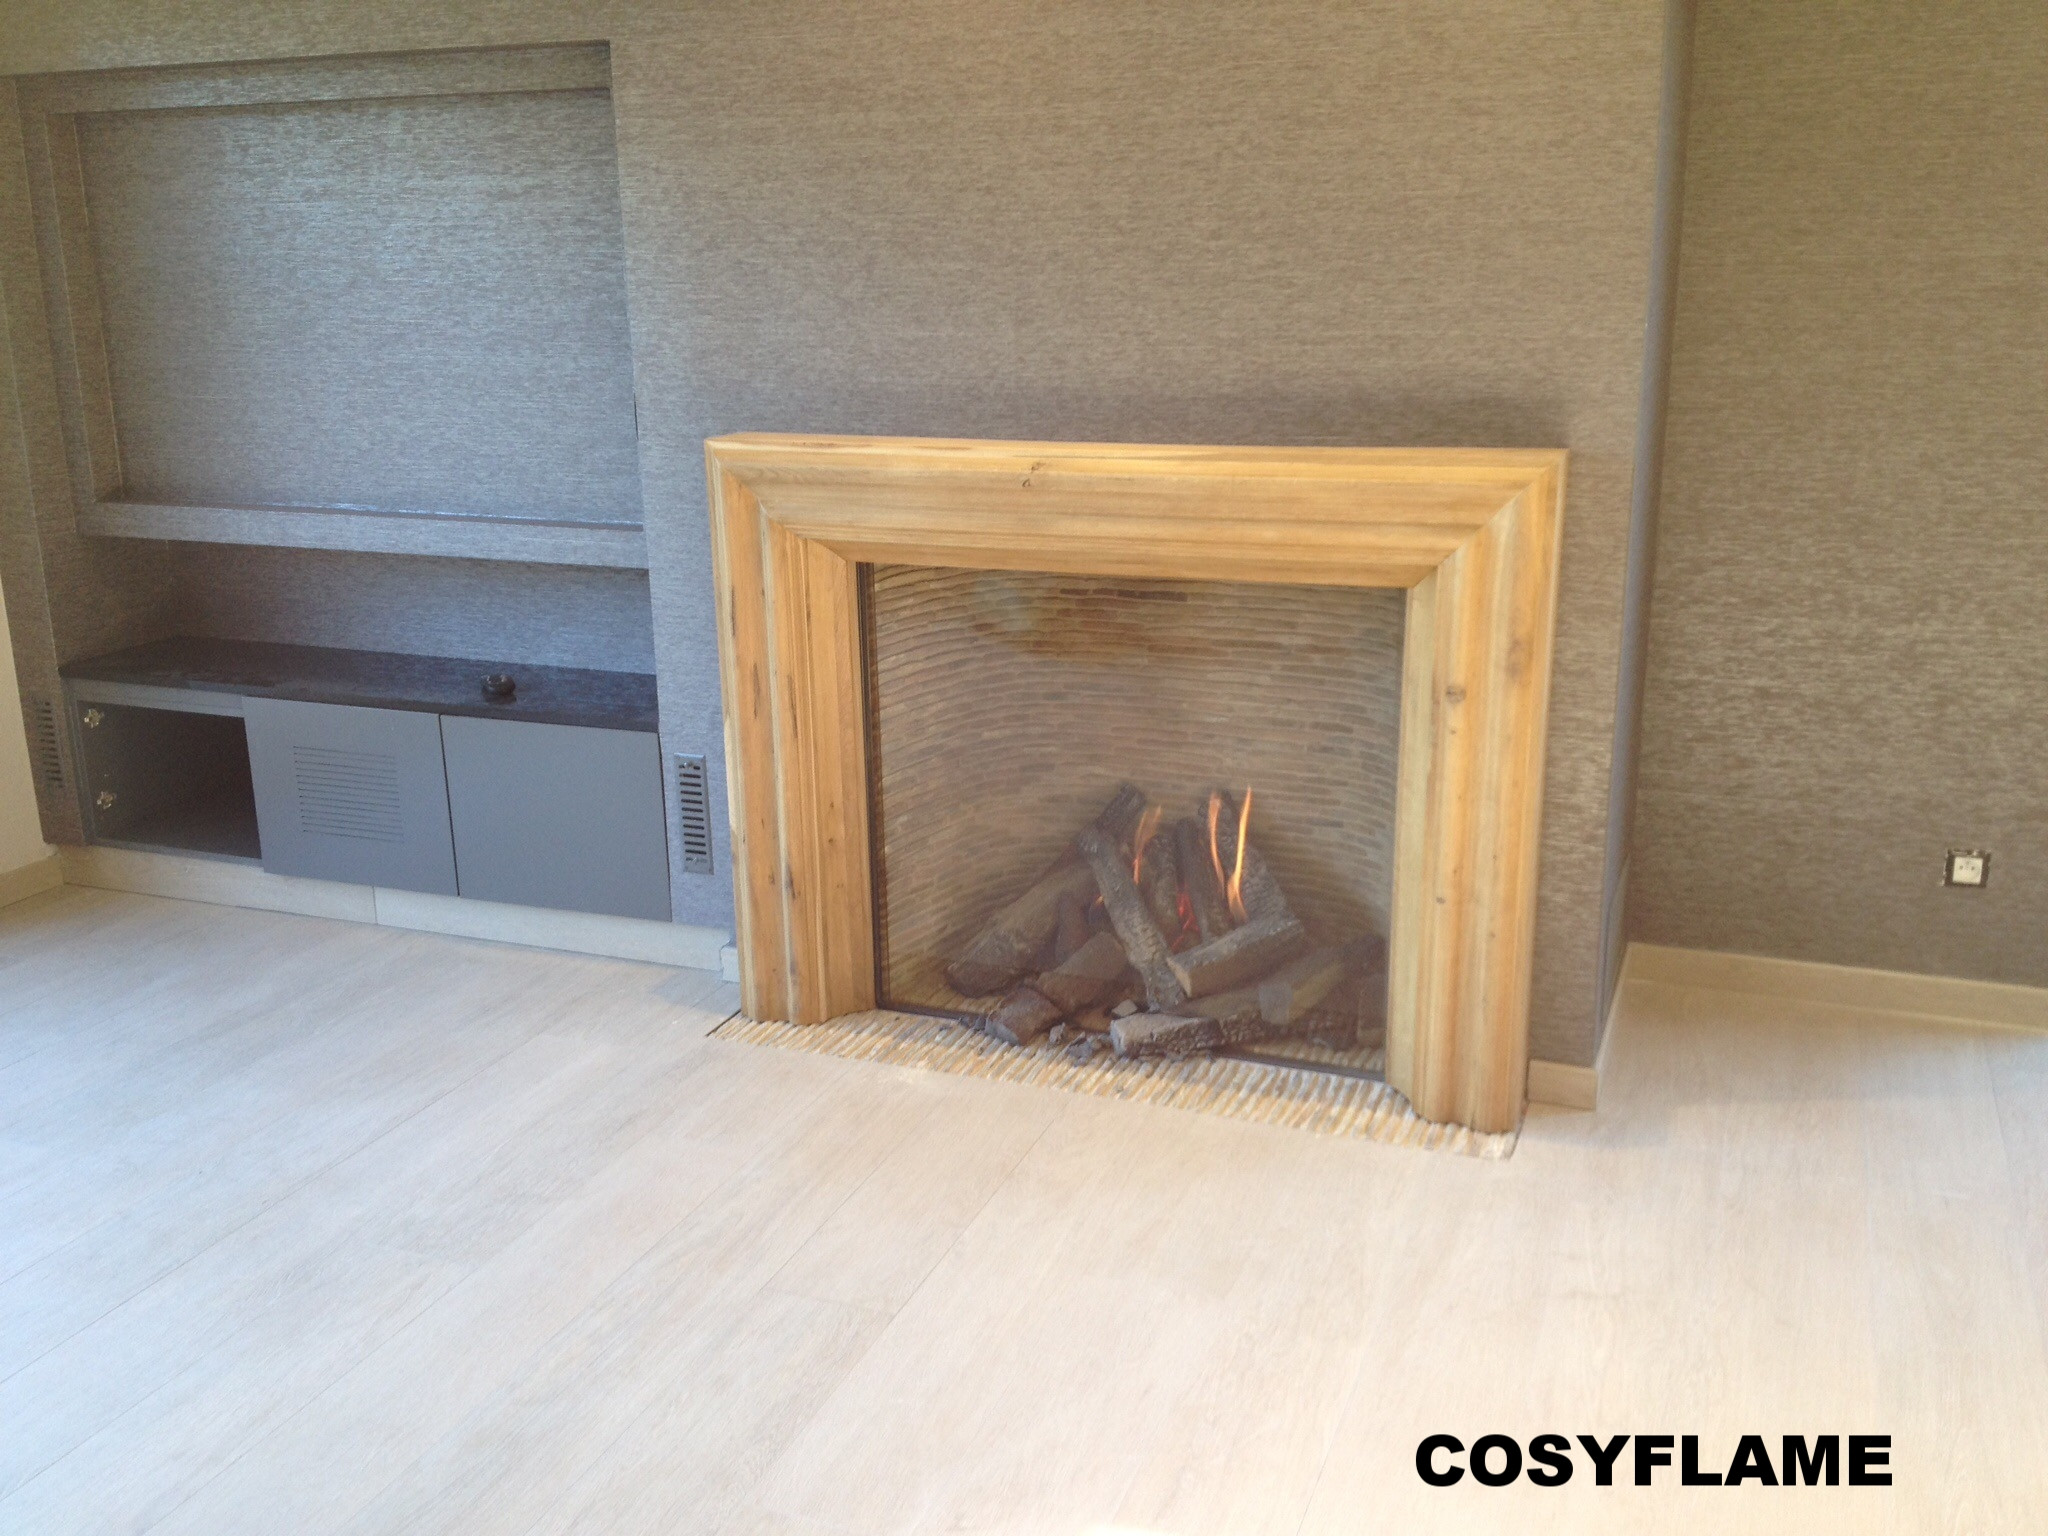 Cosyflame-Gewoon-glas-file-59